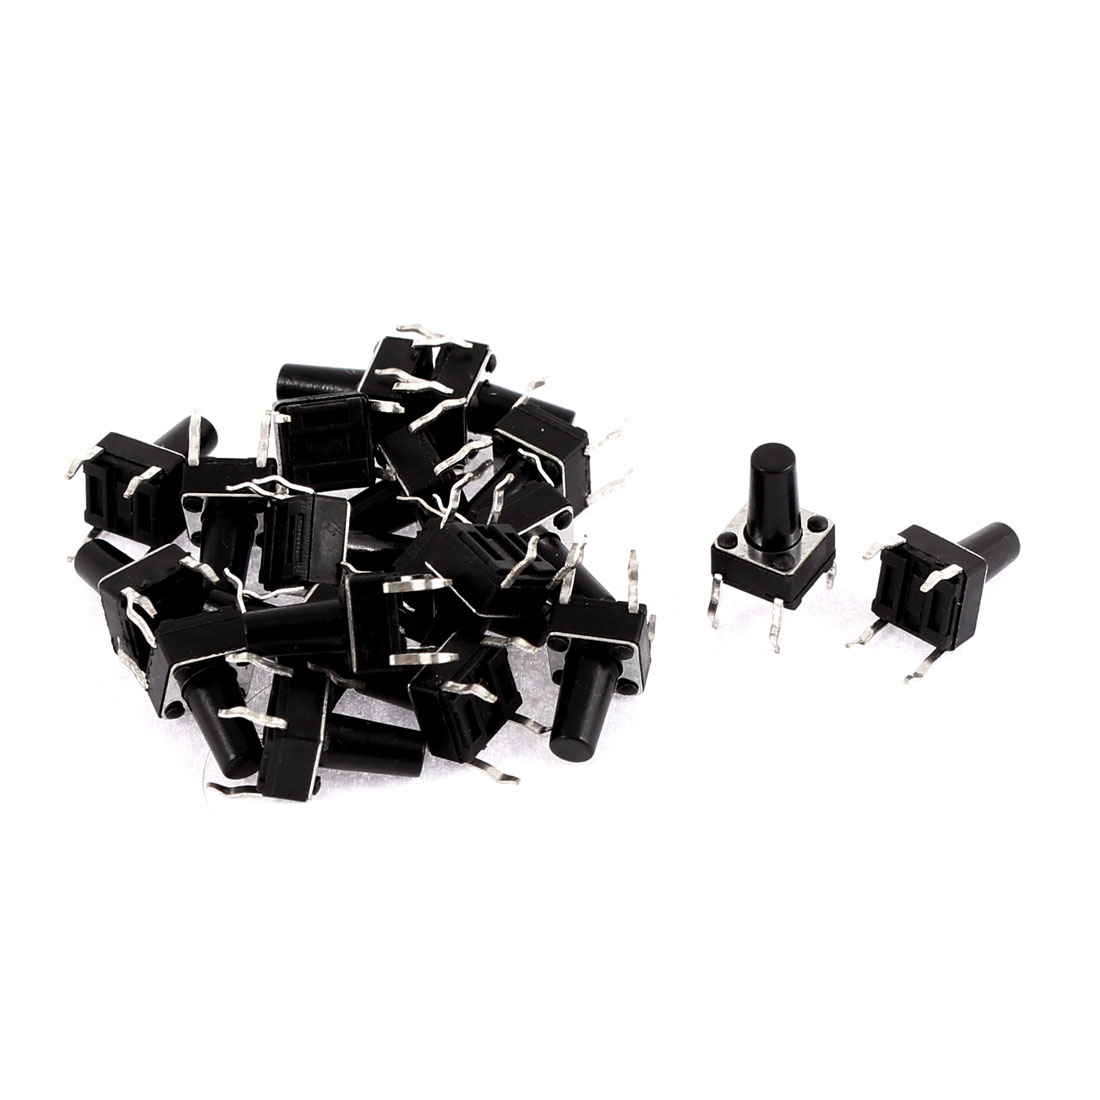 Push Type Tact Switch Plastic Momentary Button Black 6 x 6 x 10mm 20 Pcs